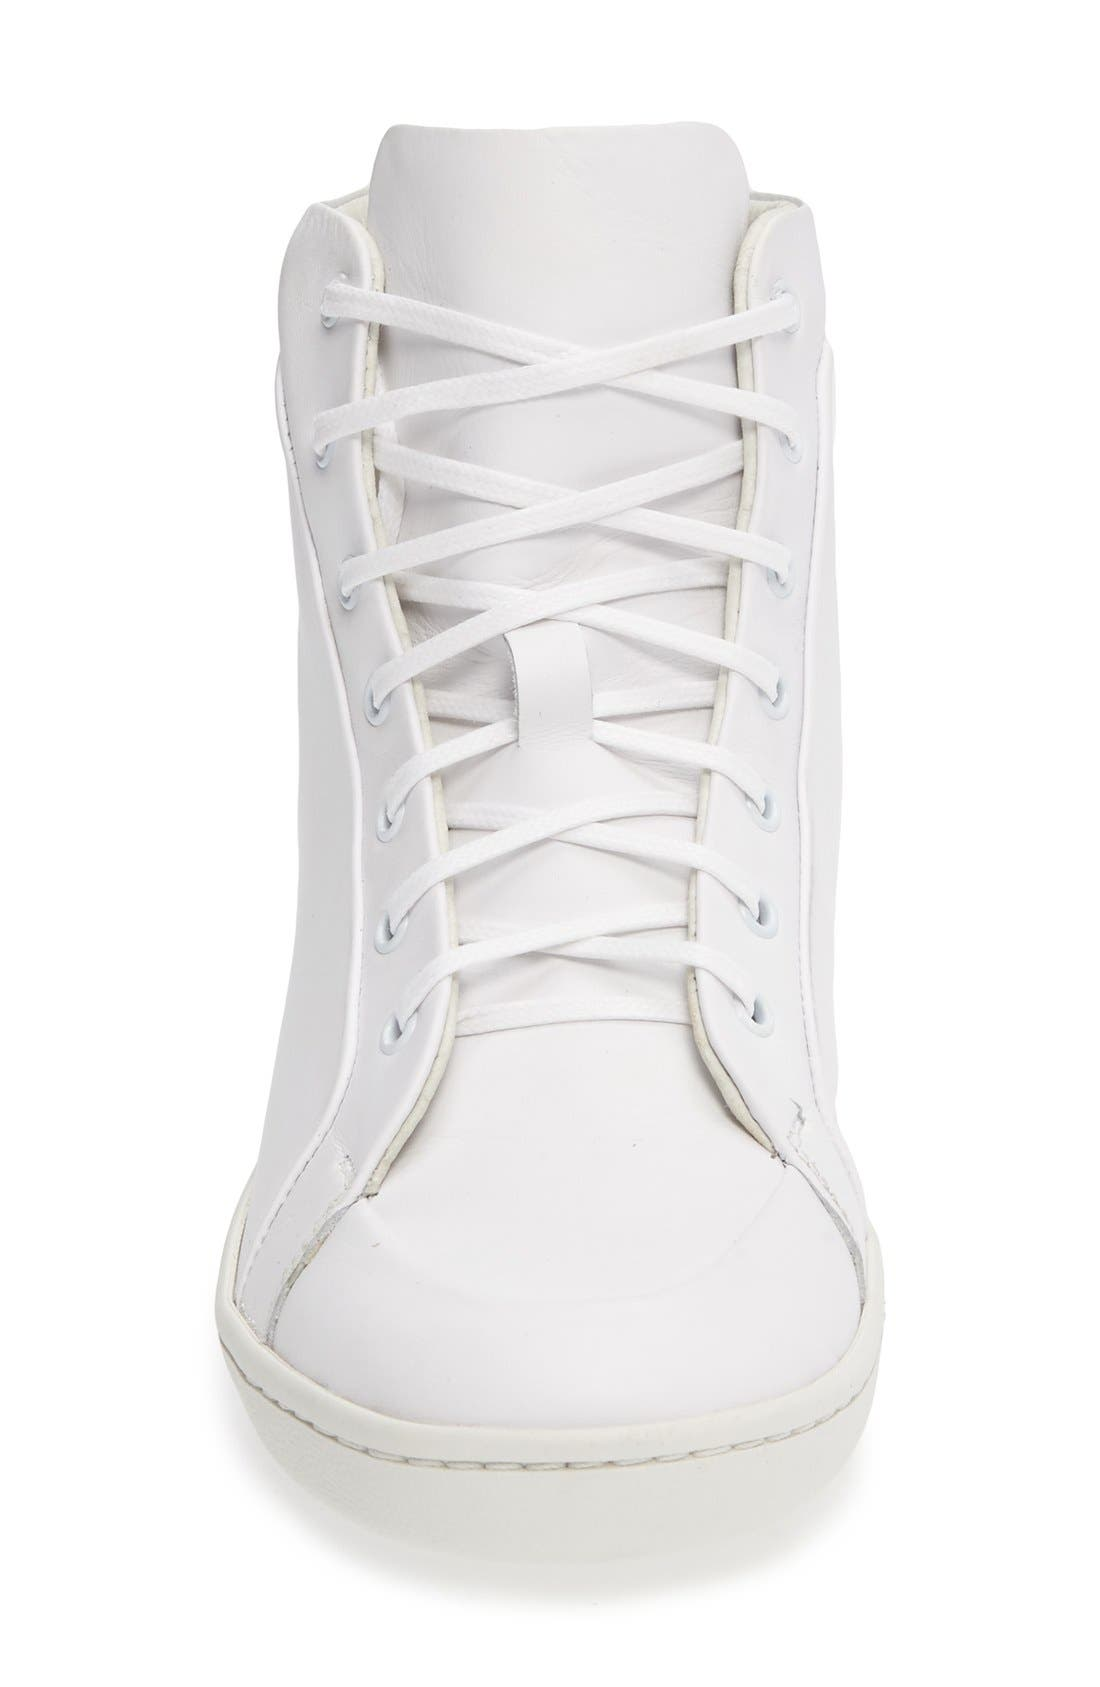 Molly High Top Sneaker,                             Alternate thumbnail 3, color,                             White Leather